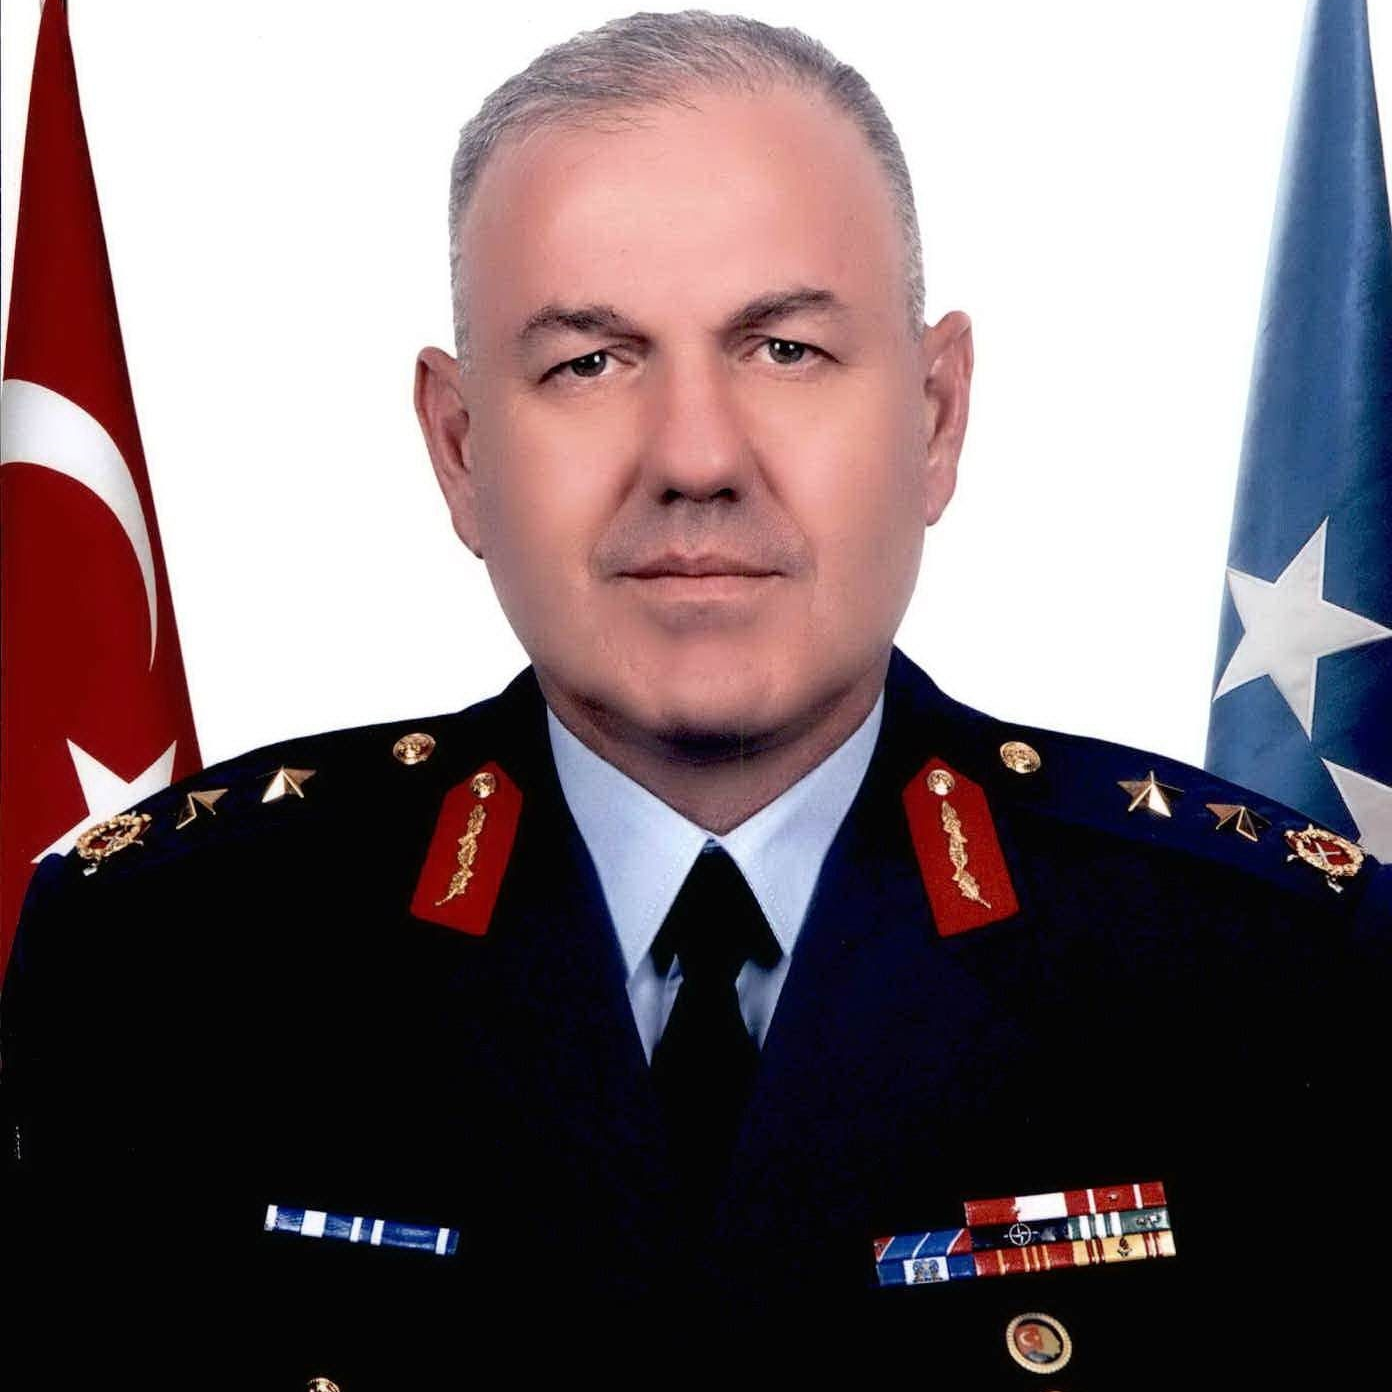 Major General Reha Ufuk Er, Chief of Plans and Policy Division at Turkish General Staff